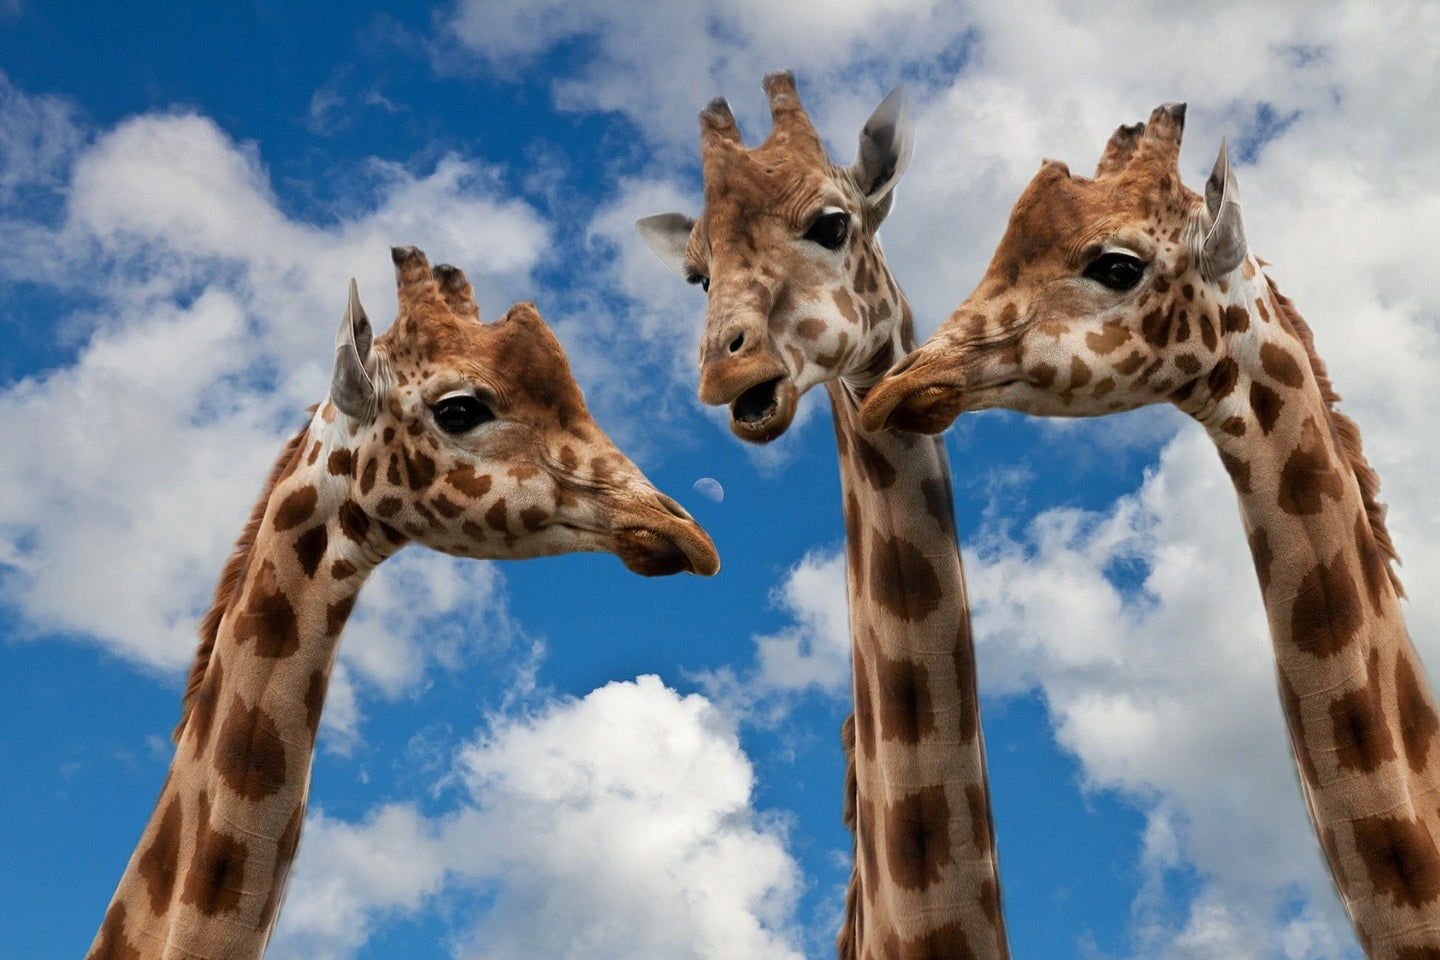 A trio of giraffes from the necks up against a cloudy sky backdrop.